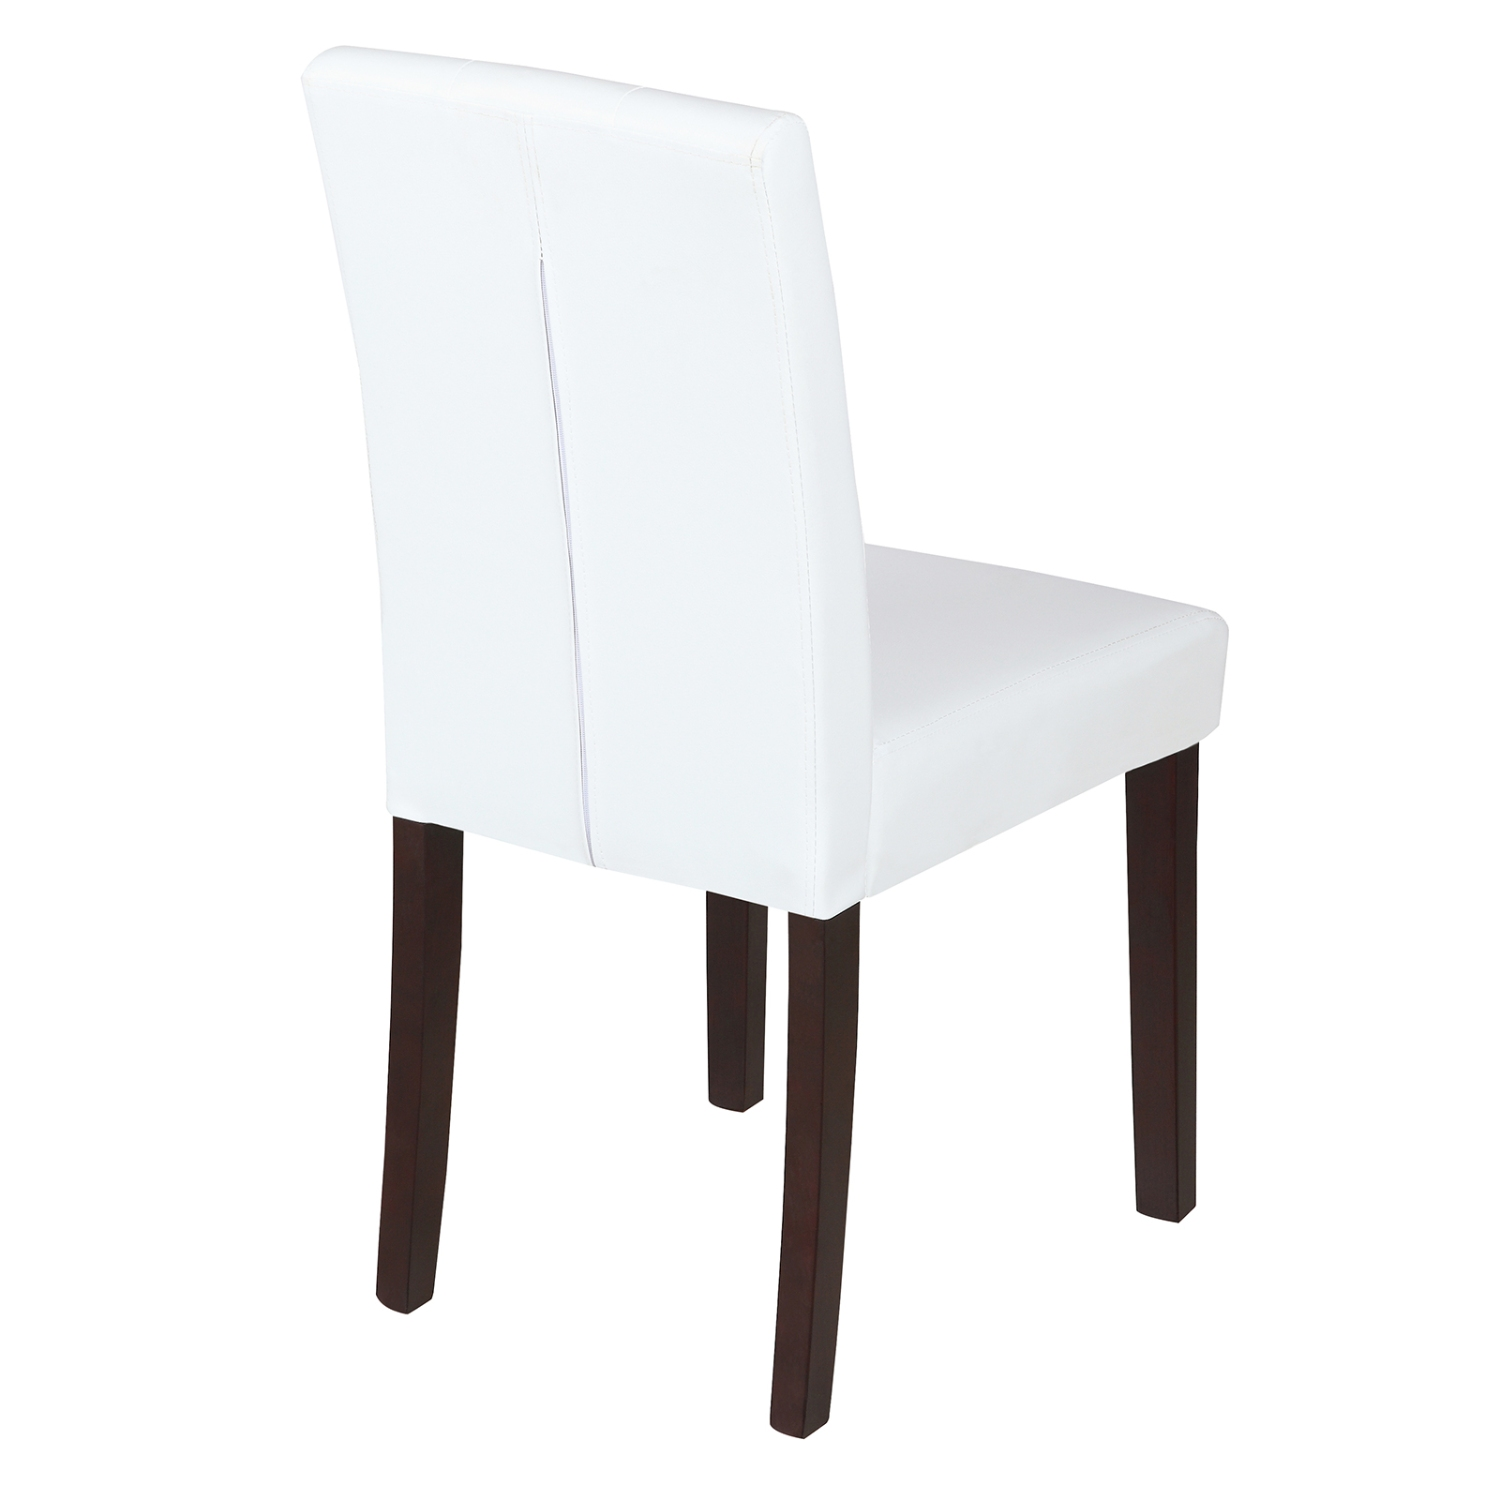 White Leather Dining Room Set: Set Of 4 Dining Chair White Leather Kitchen Dining Room